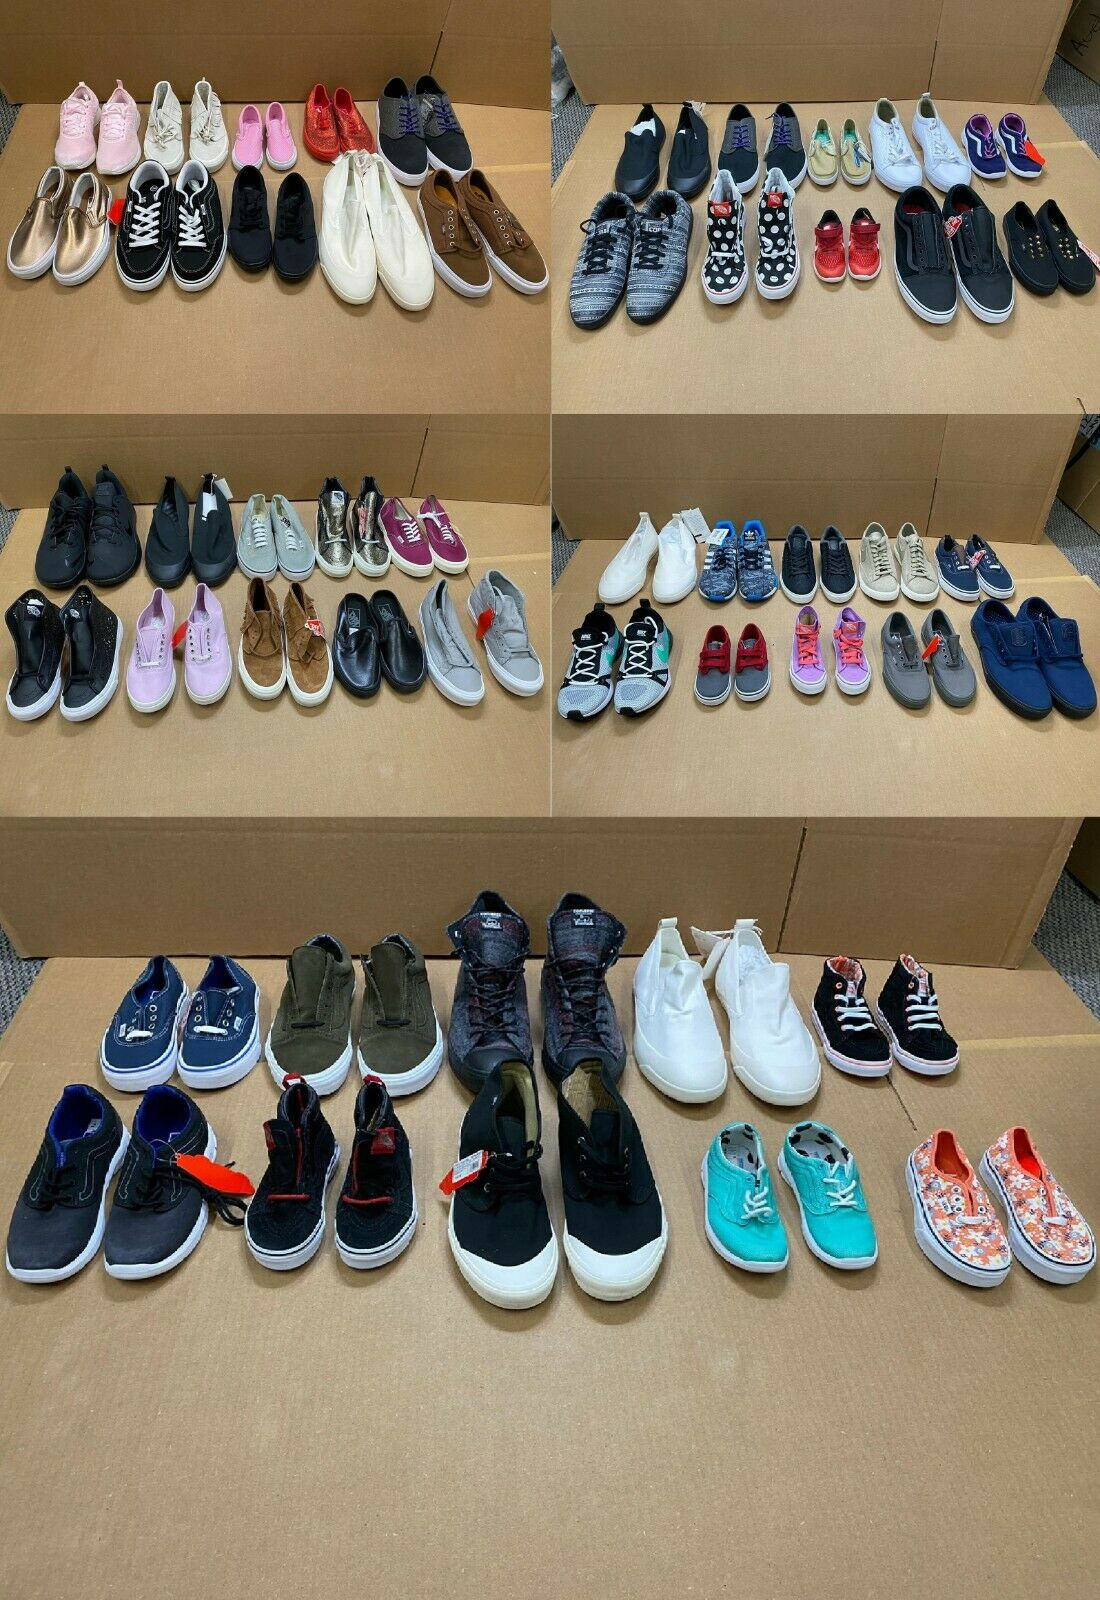 Lot (50) VANS Converse Resale Shoes Sneakers MTE Sk8 Hi Chuck Taylor Wholesale